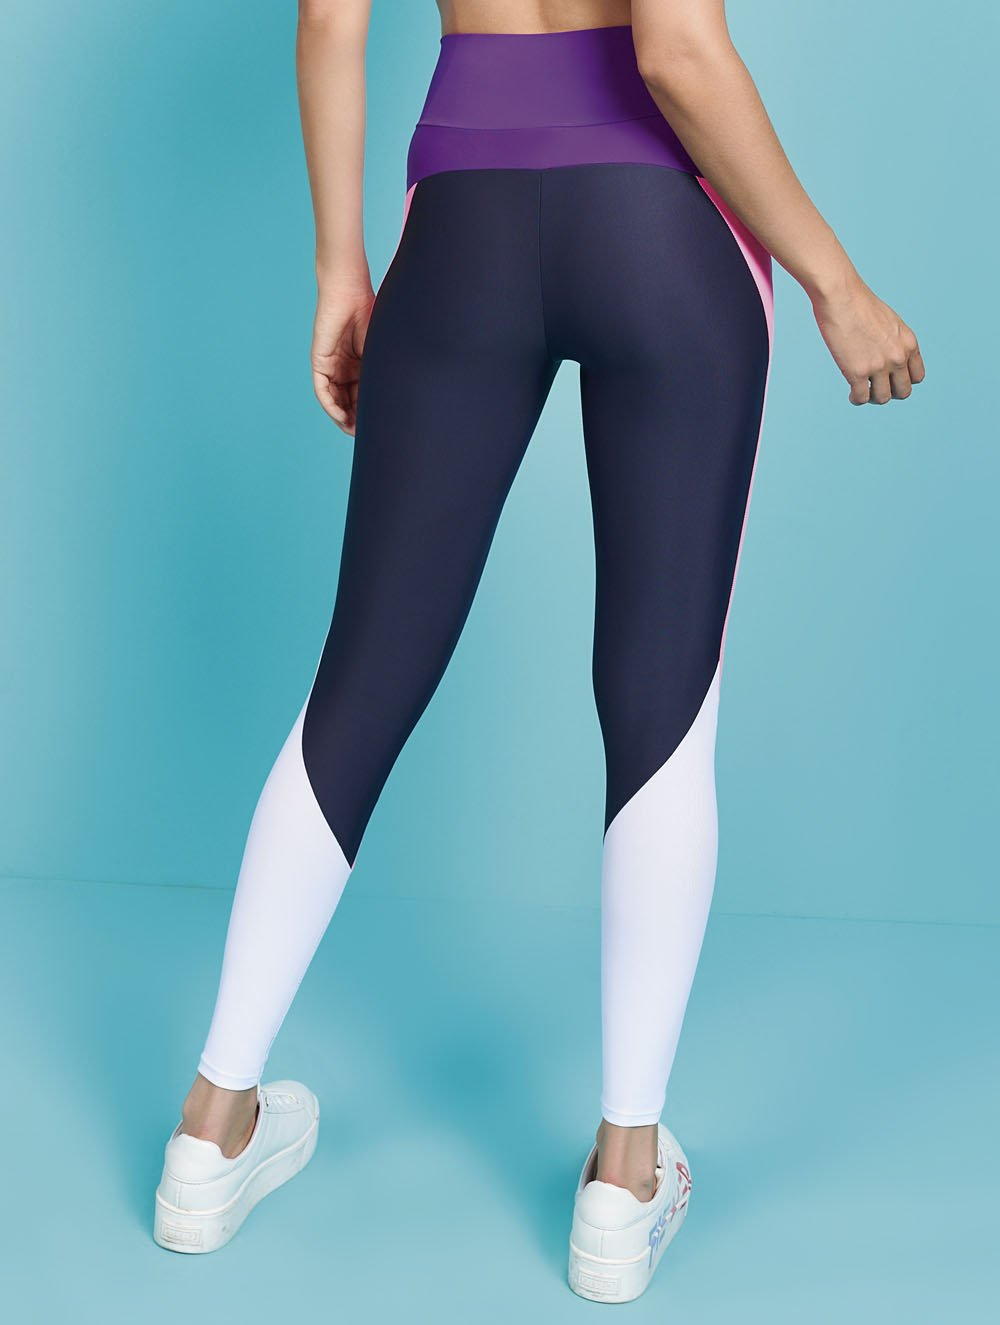 Squad Leggings with cutouts